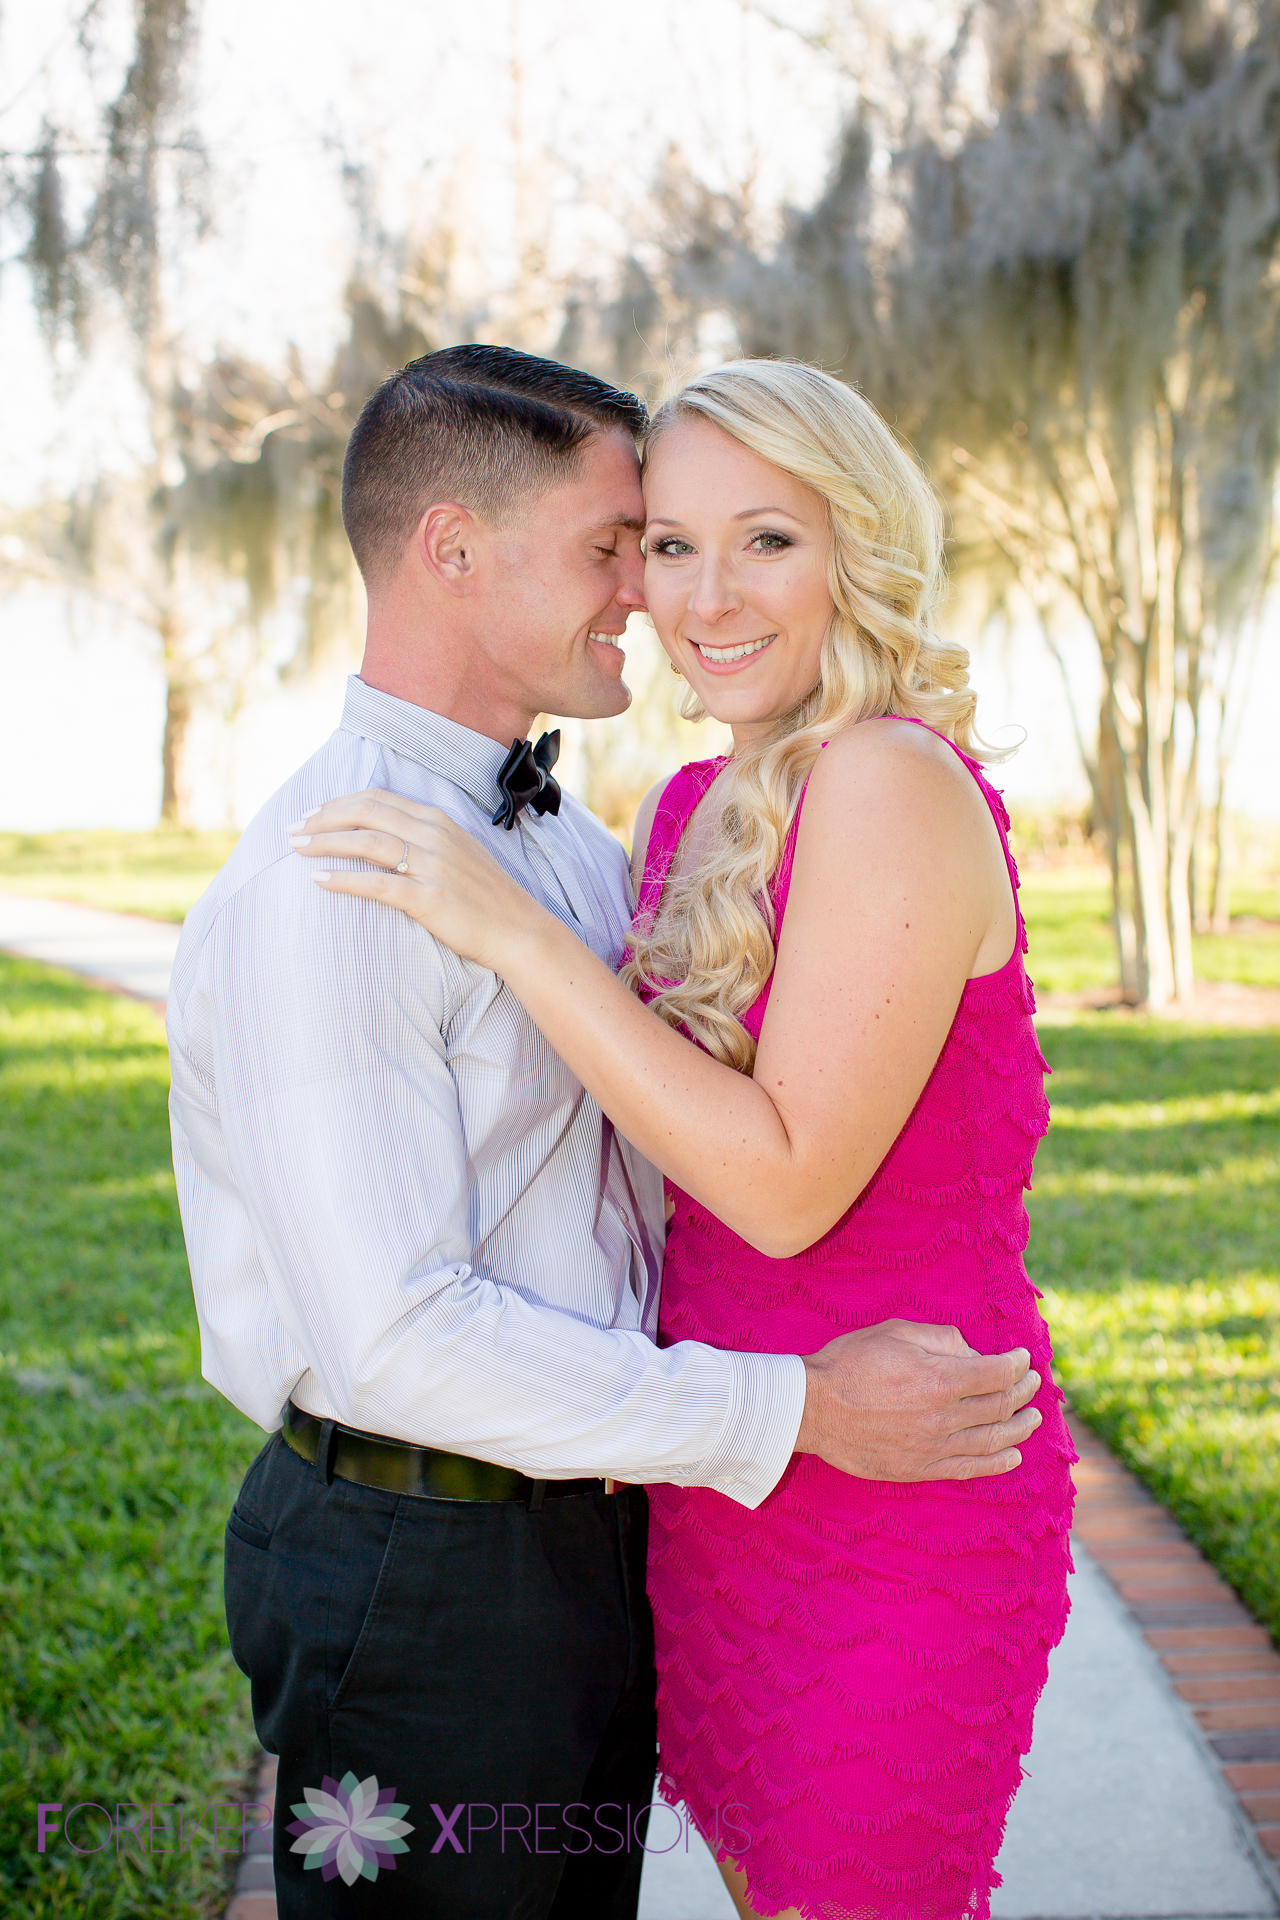 Forever_Xpressions_Engagement_Session_Orlando-1356